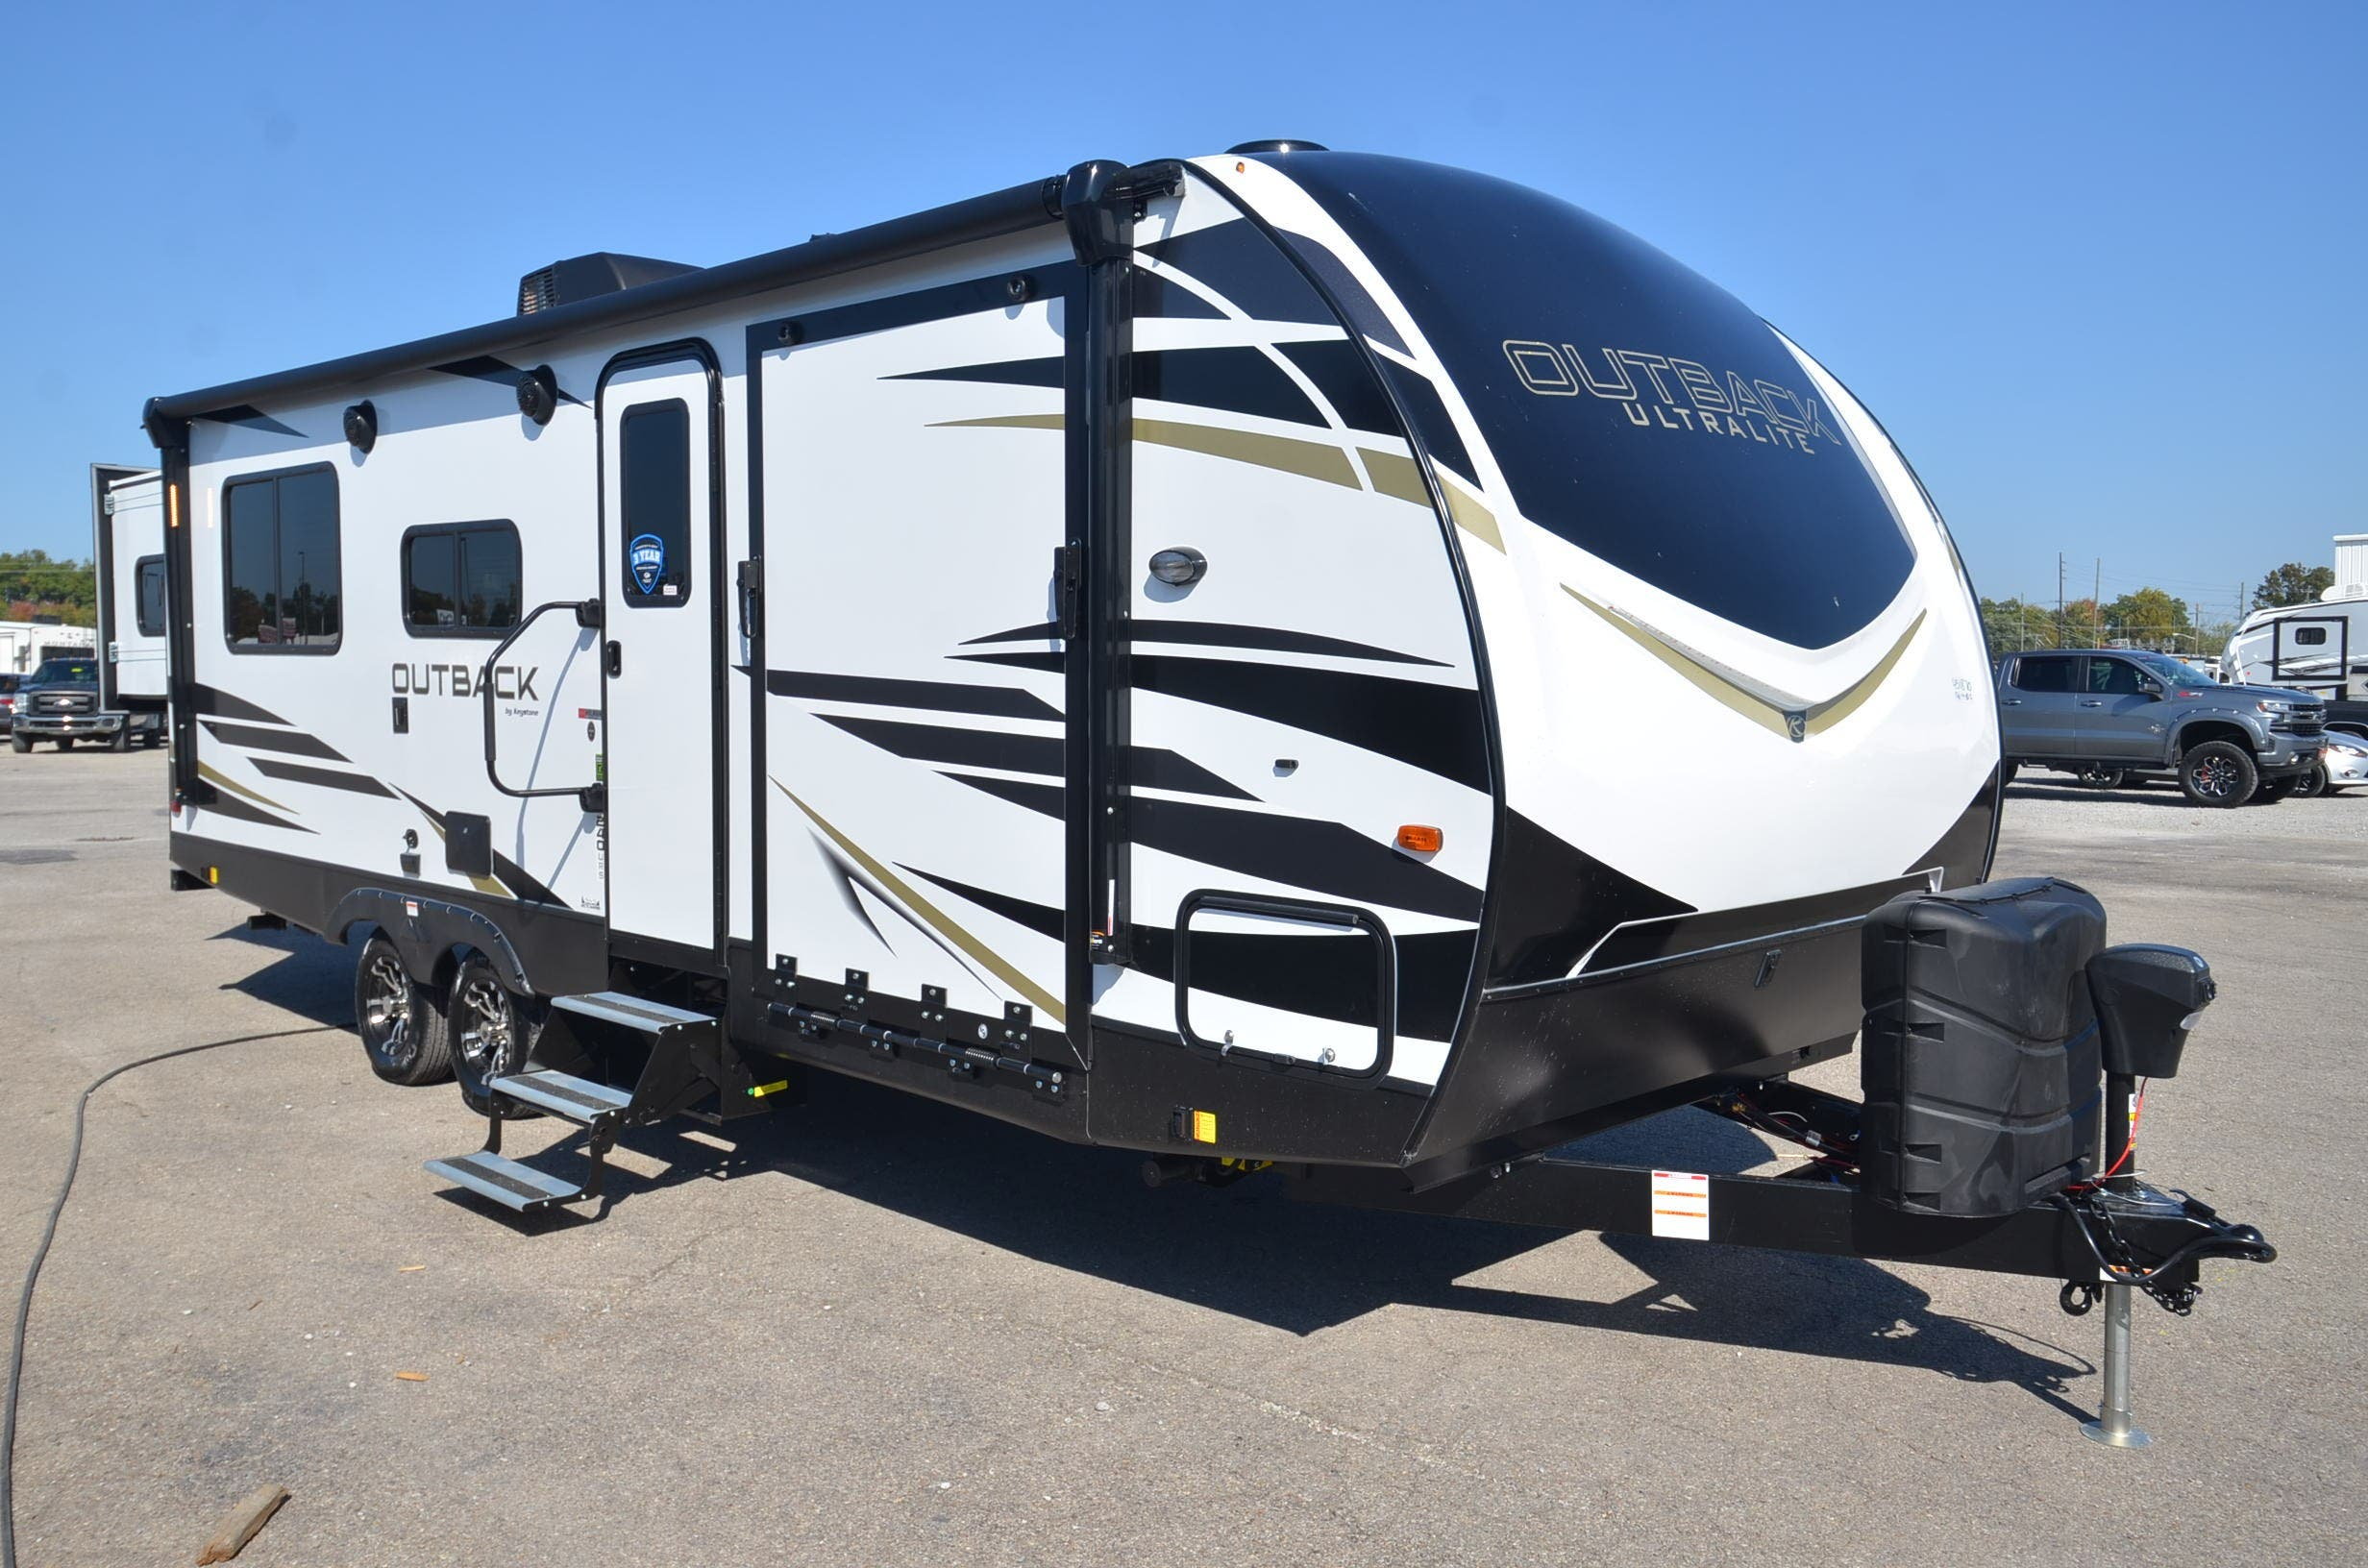 2021 Keystone Outback Ultra-Lite 240URS - RVs for Sale in ...